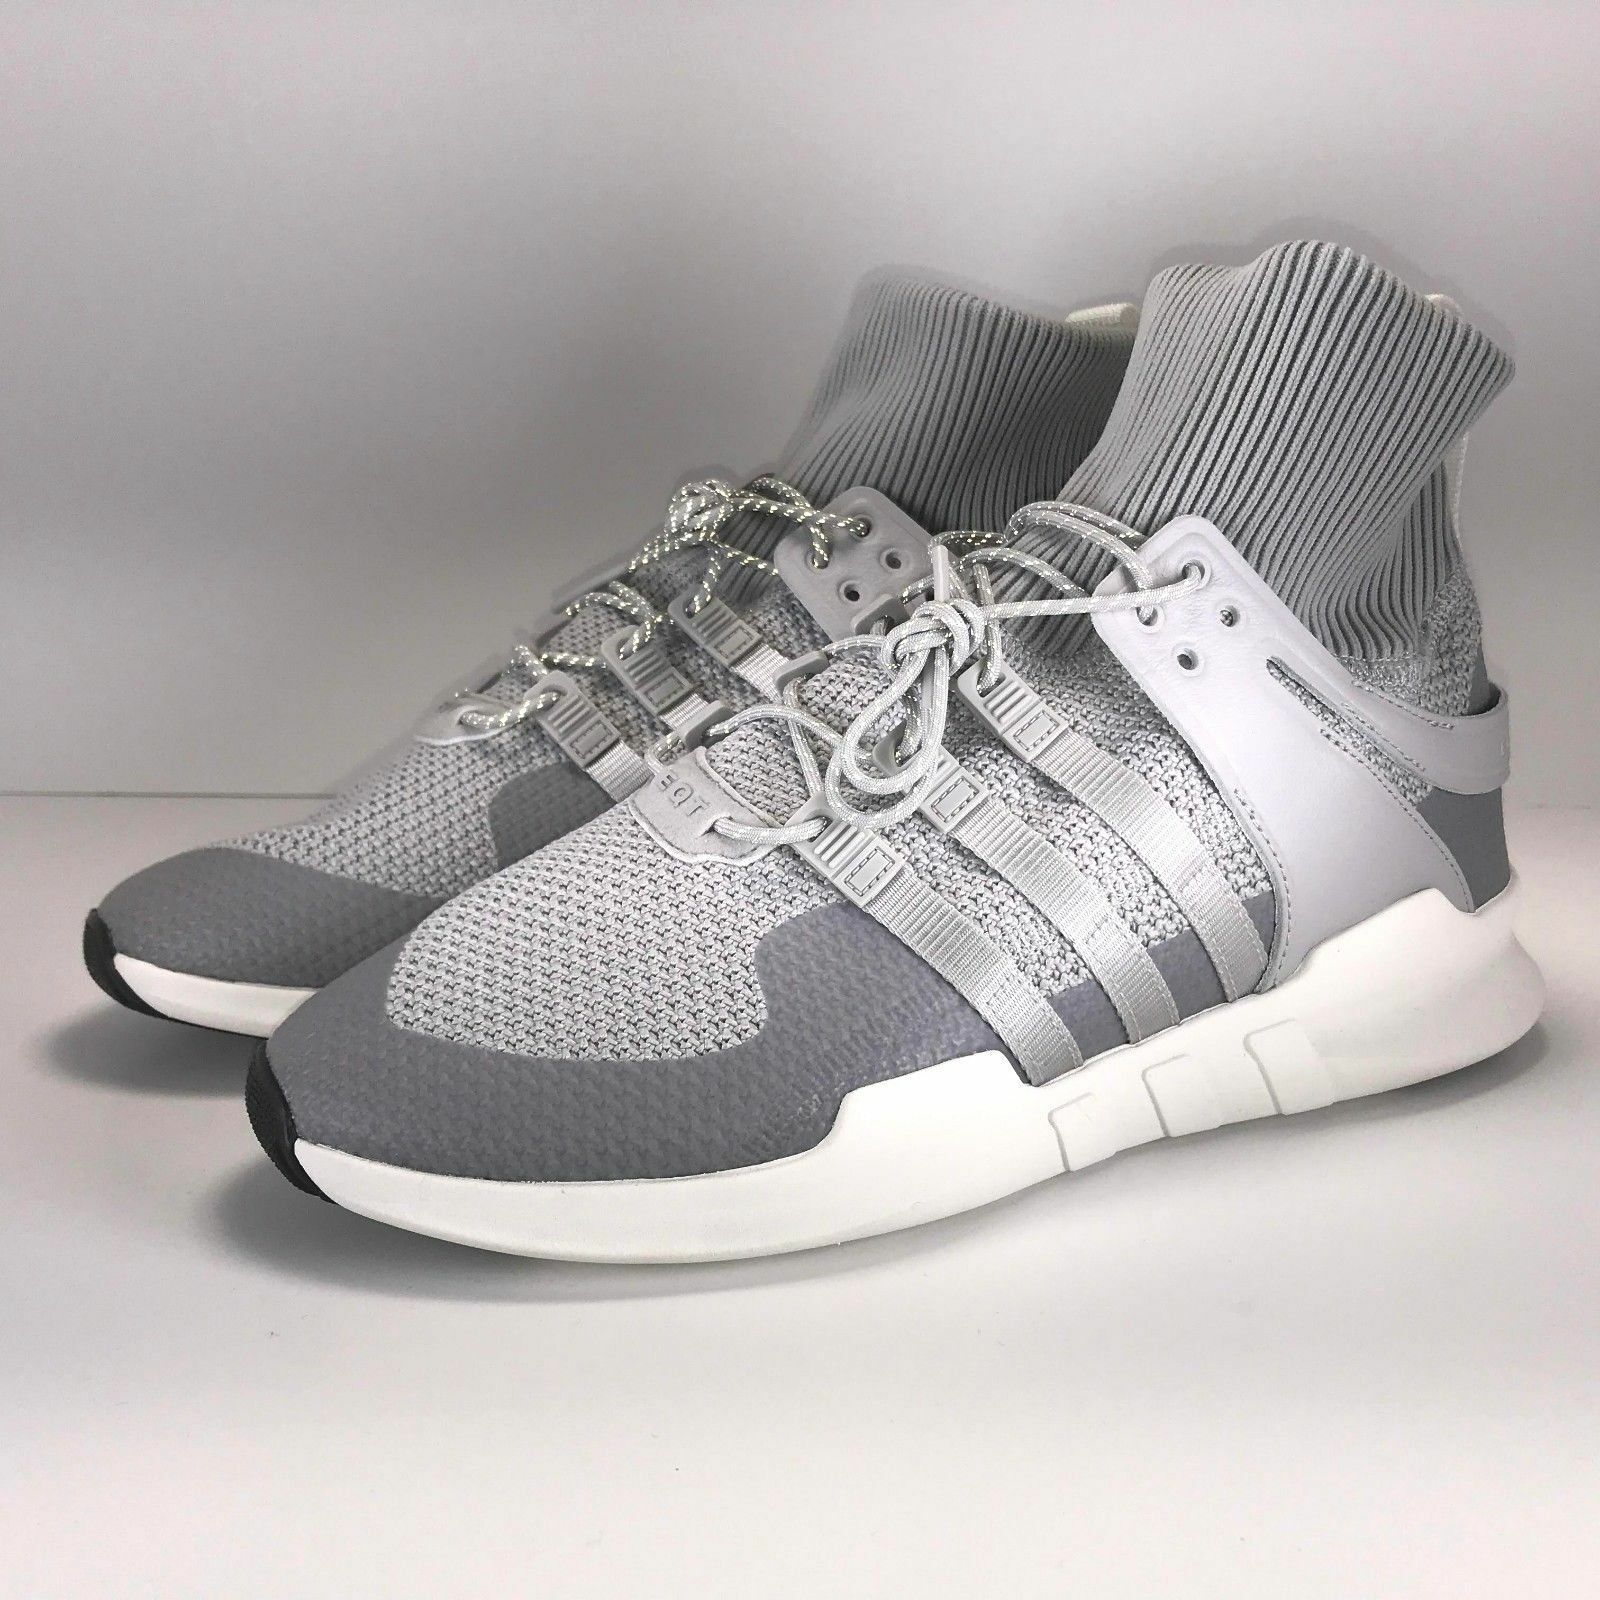 Adidas Originals EQT Support ADV Winter Grey White BZ0641 Size 7